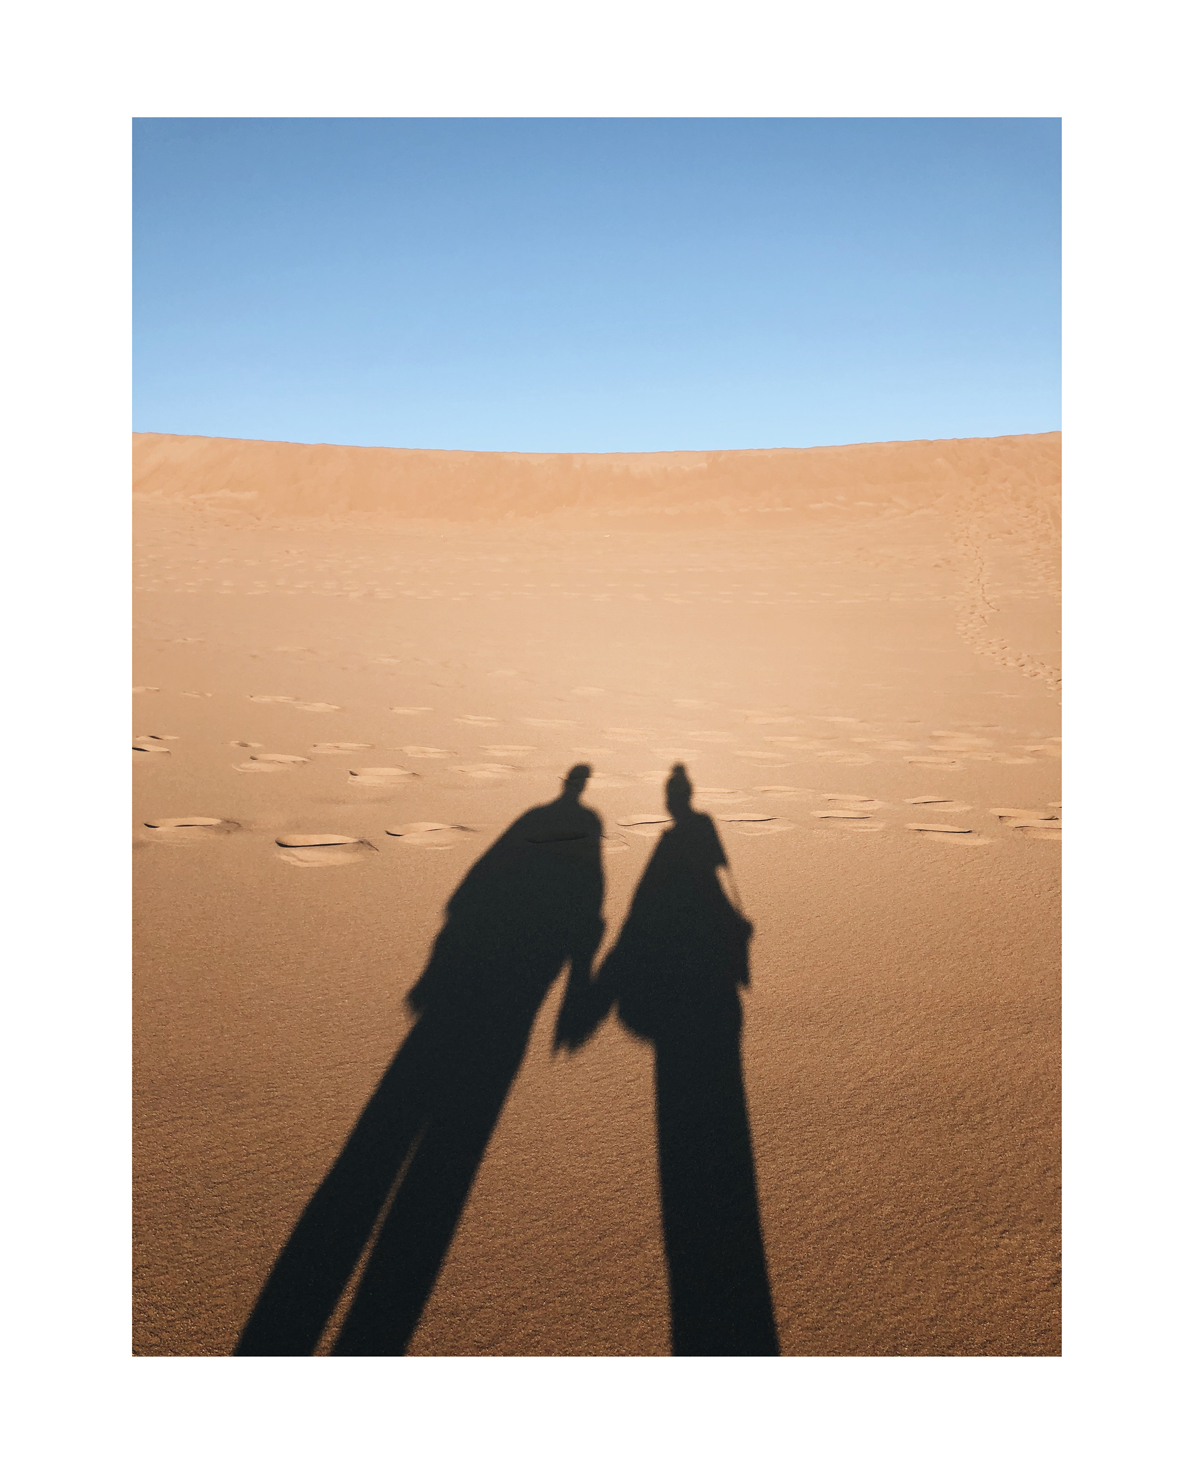 Photo of couple casting shadow onto desert sands by Molly Olwig